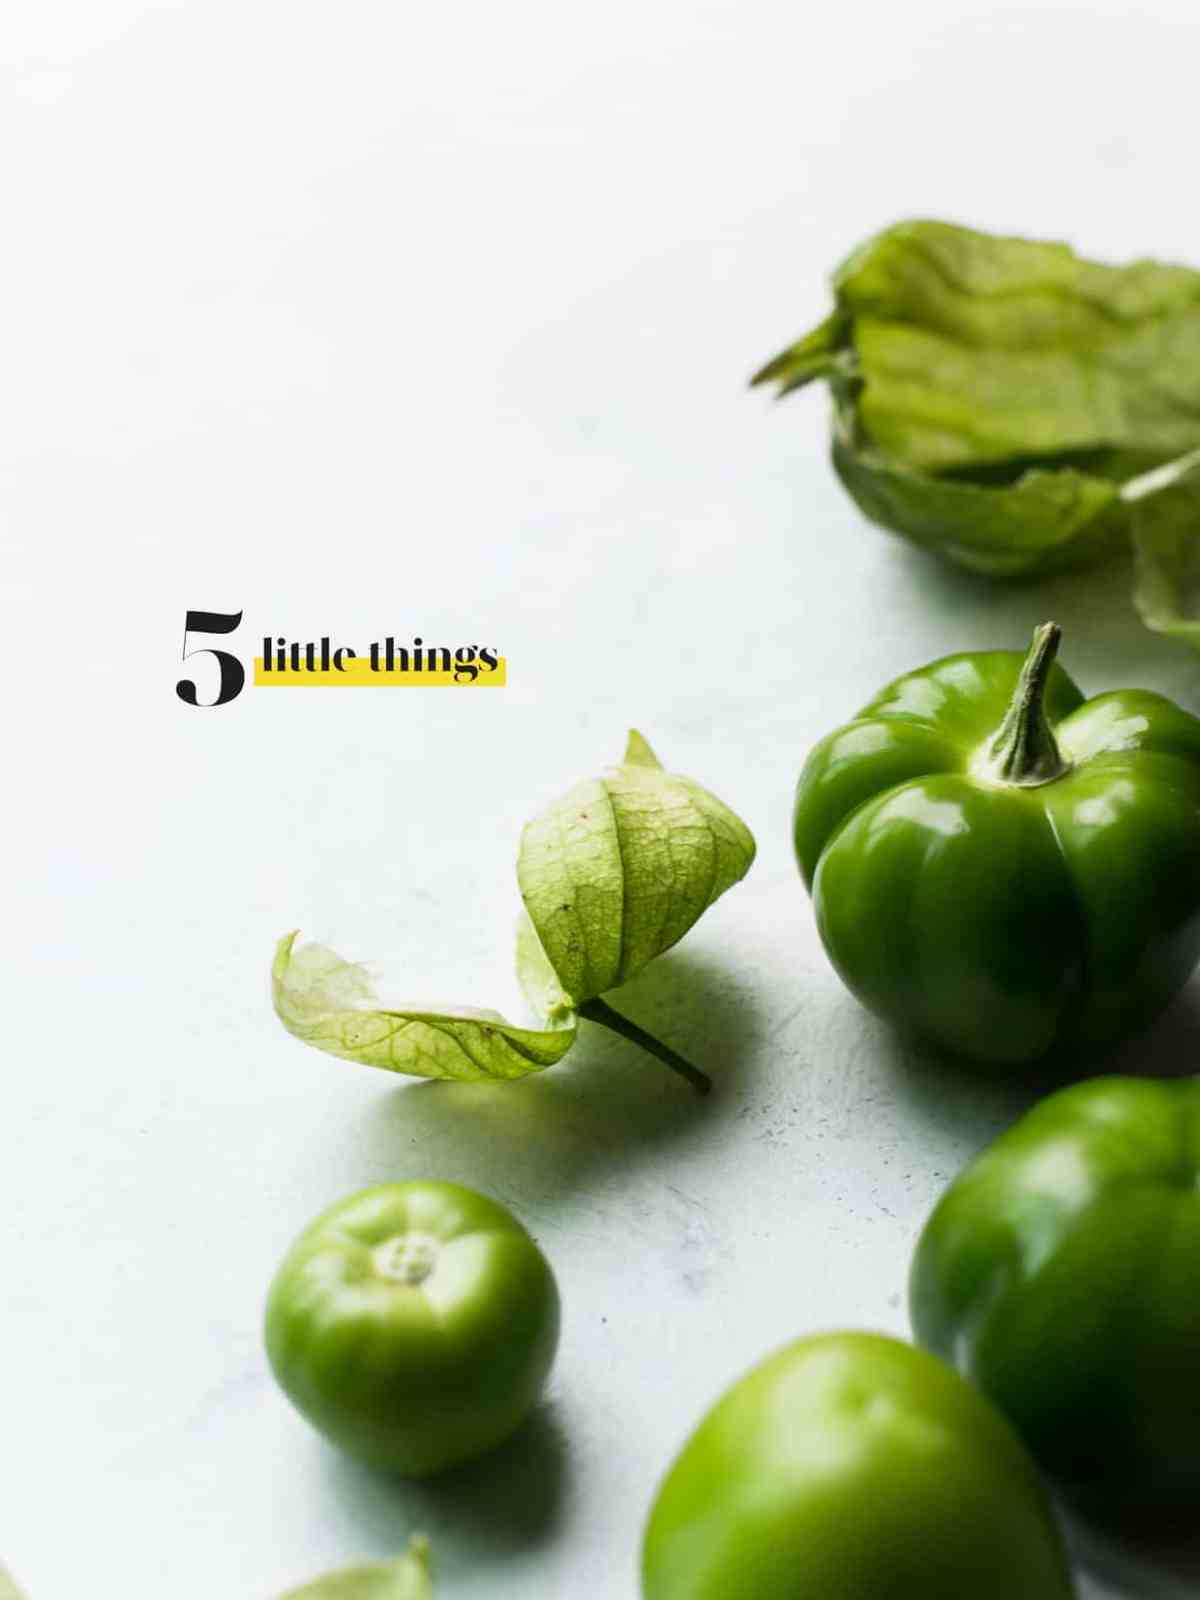 Several green tomatillos on a counter top | Five Little Things I loved the week of October 21, 2016.